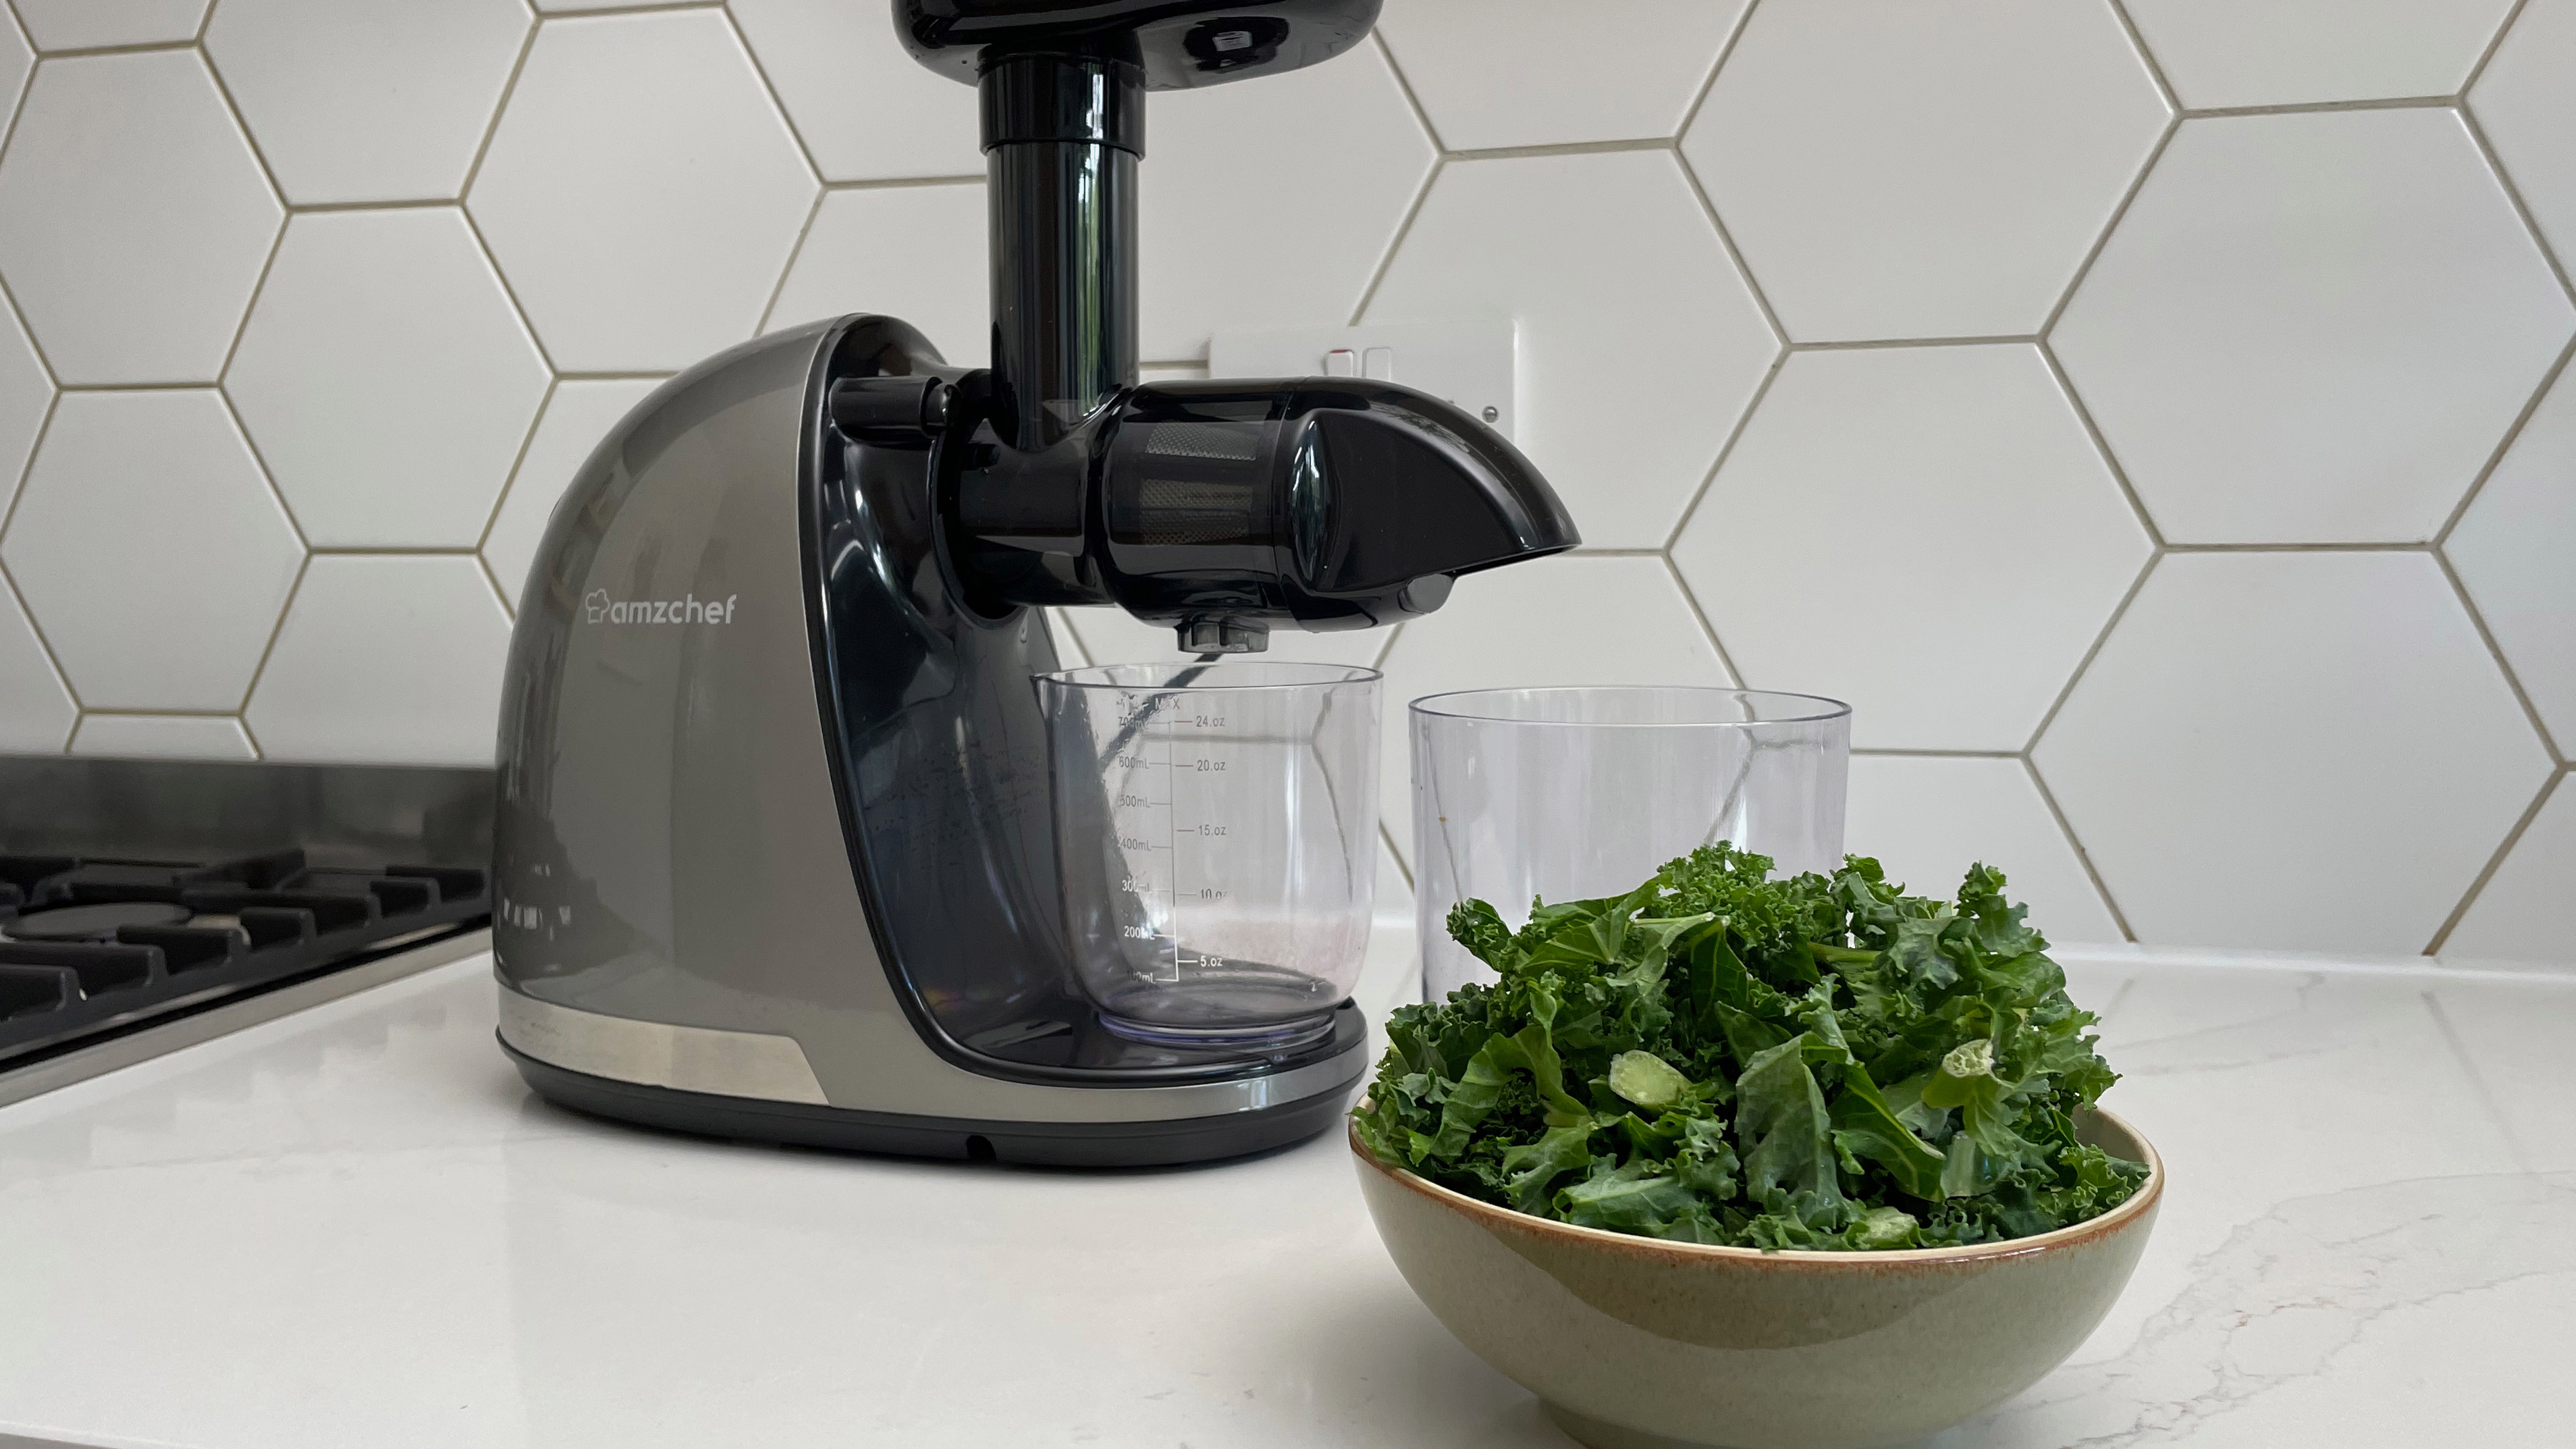 The Amzchef Slow Juicer ZM1501 with a bowl of kale ready to be juiced